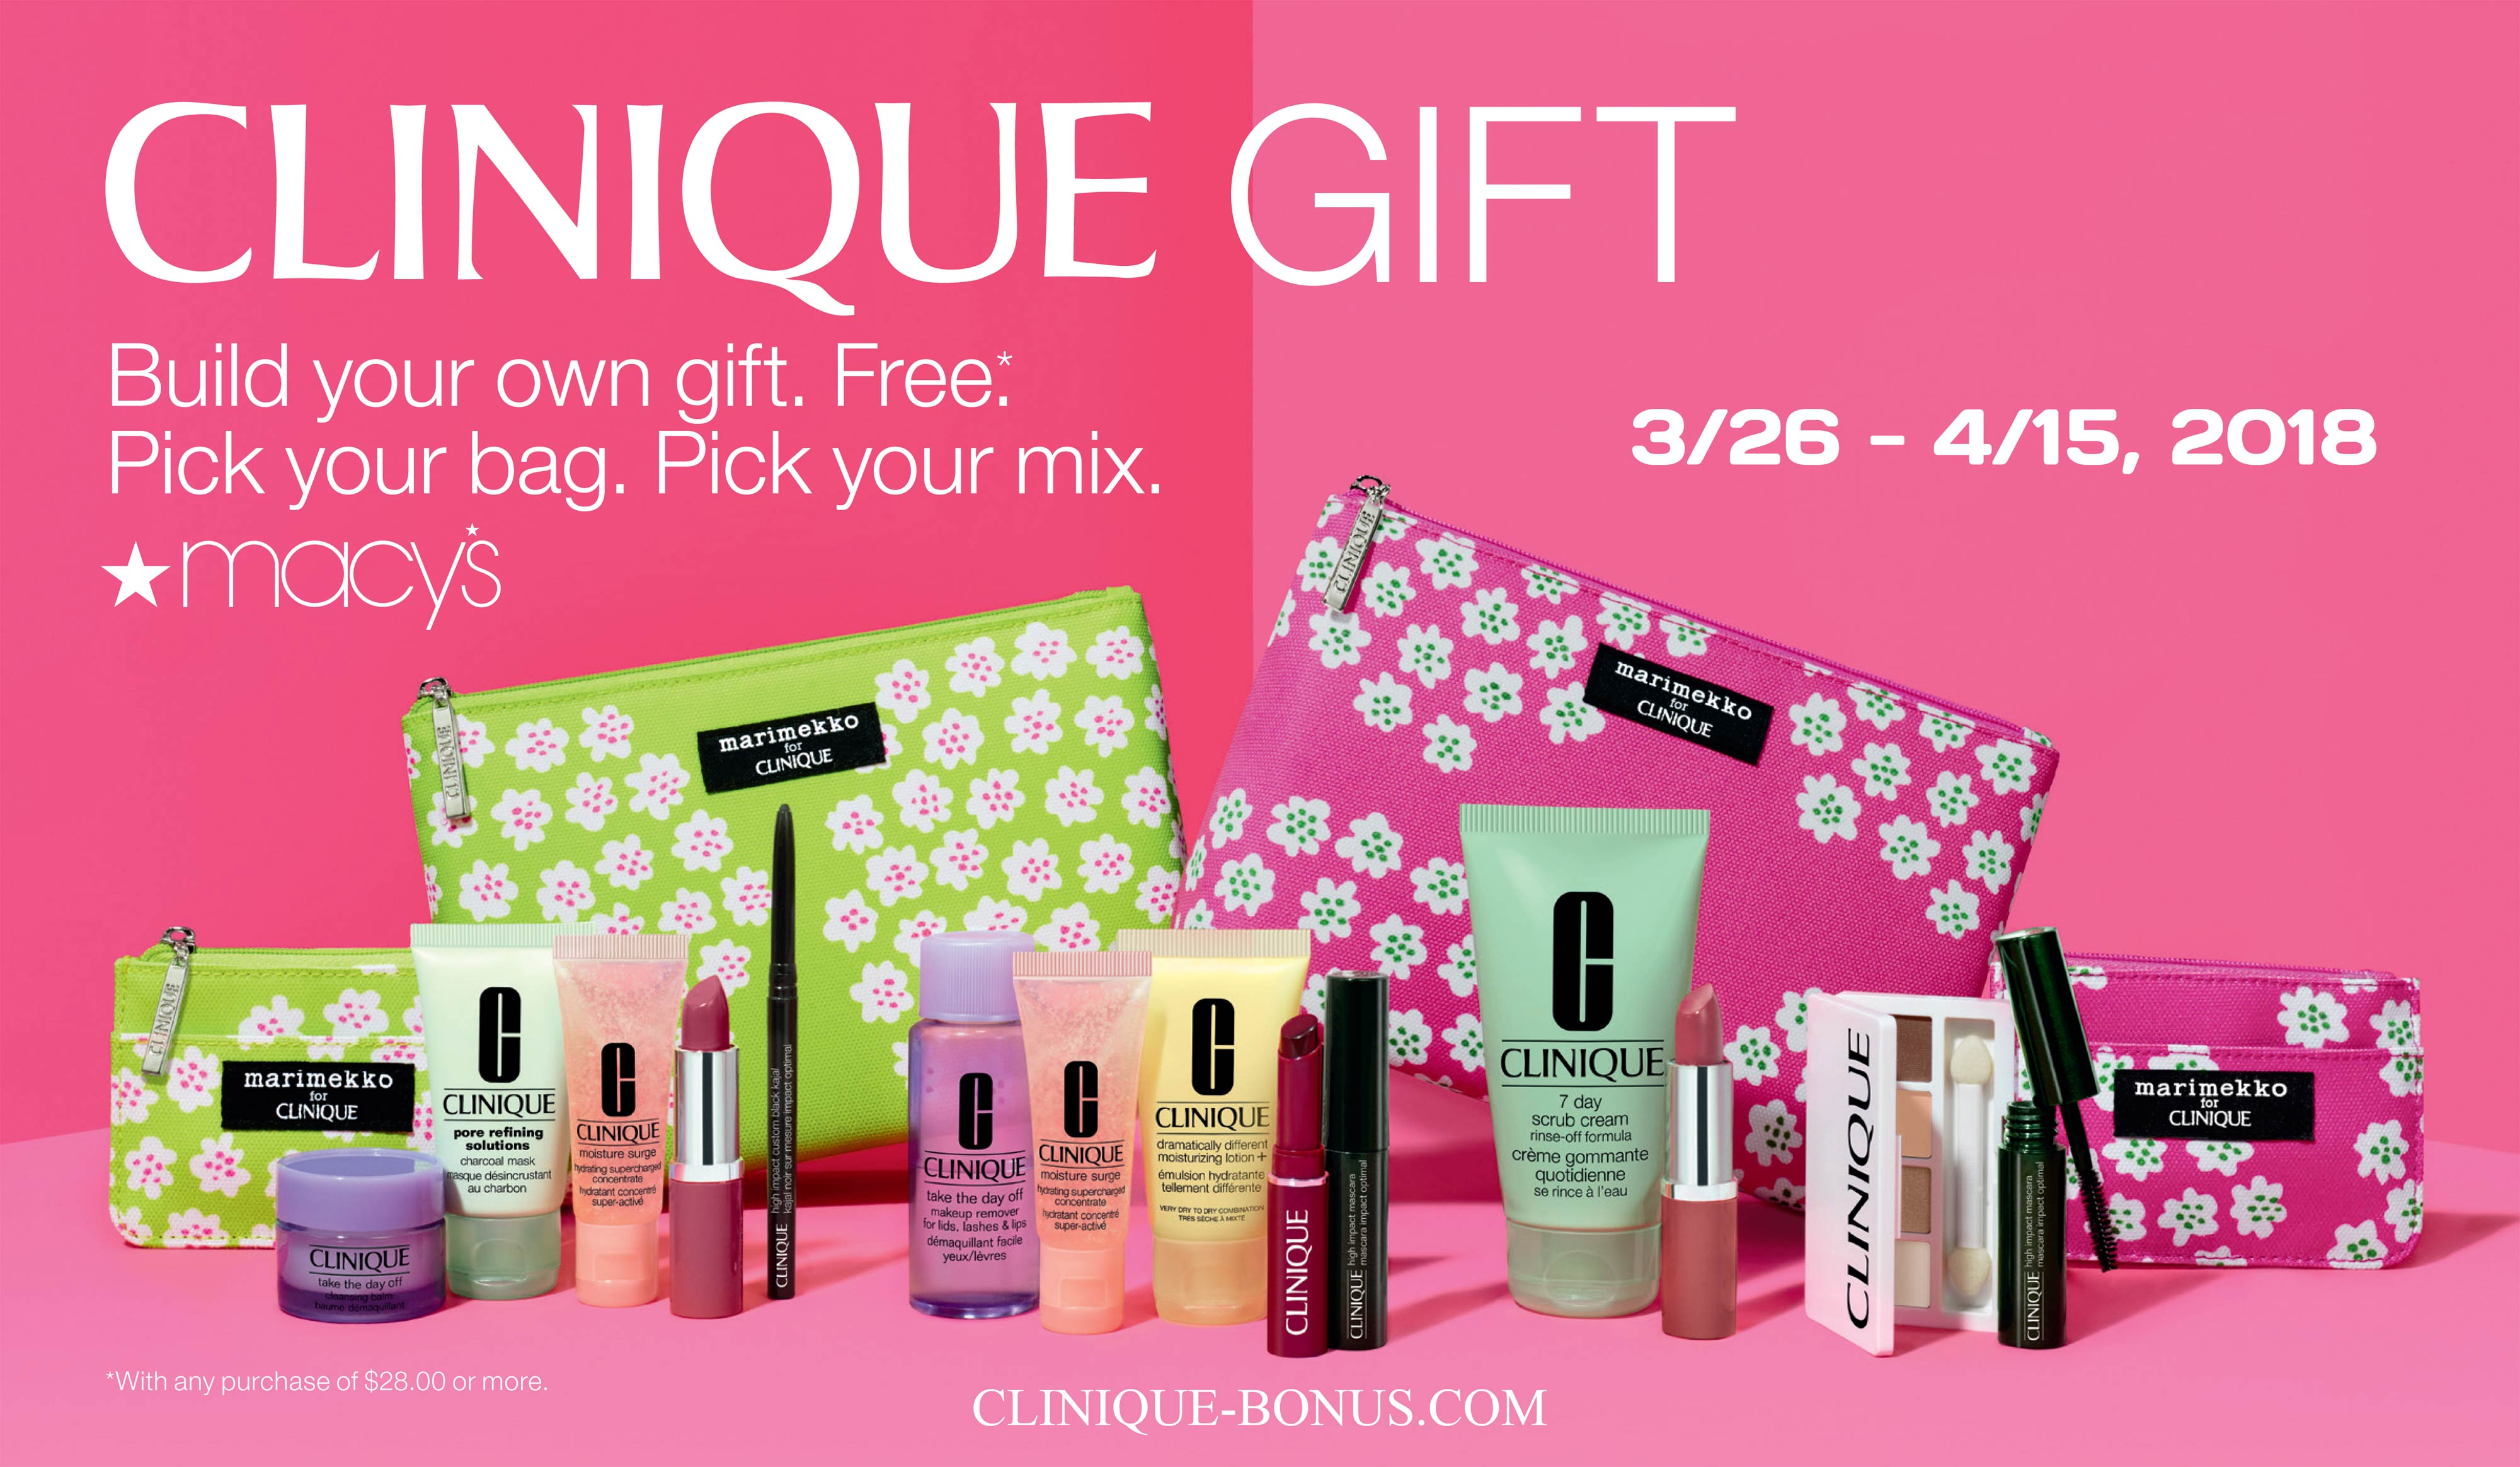 A free gift with any $28 Clinique purchase